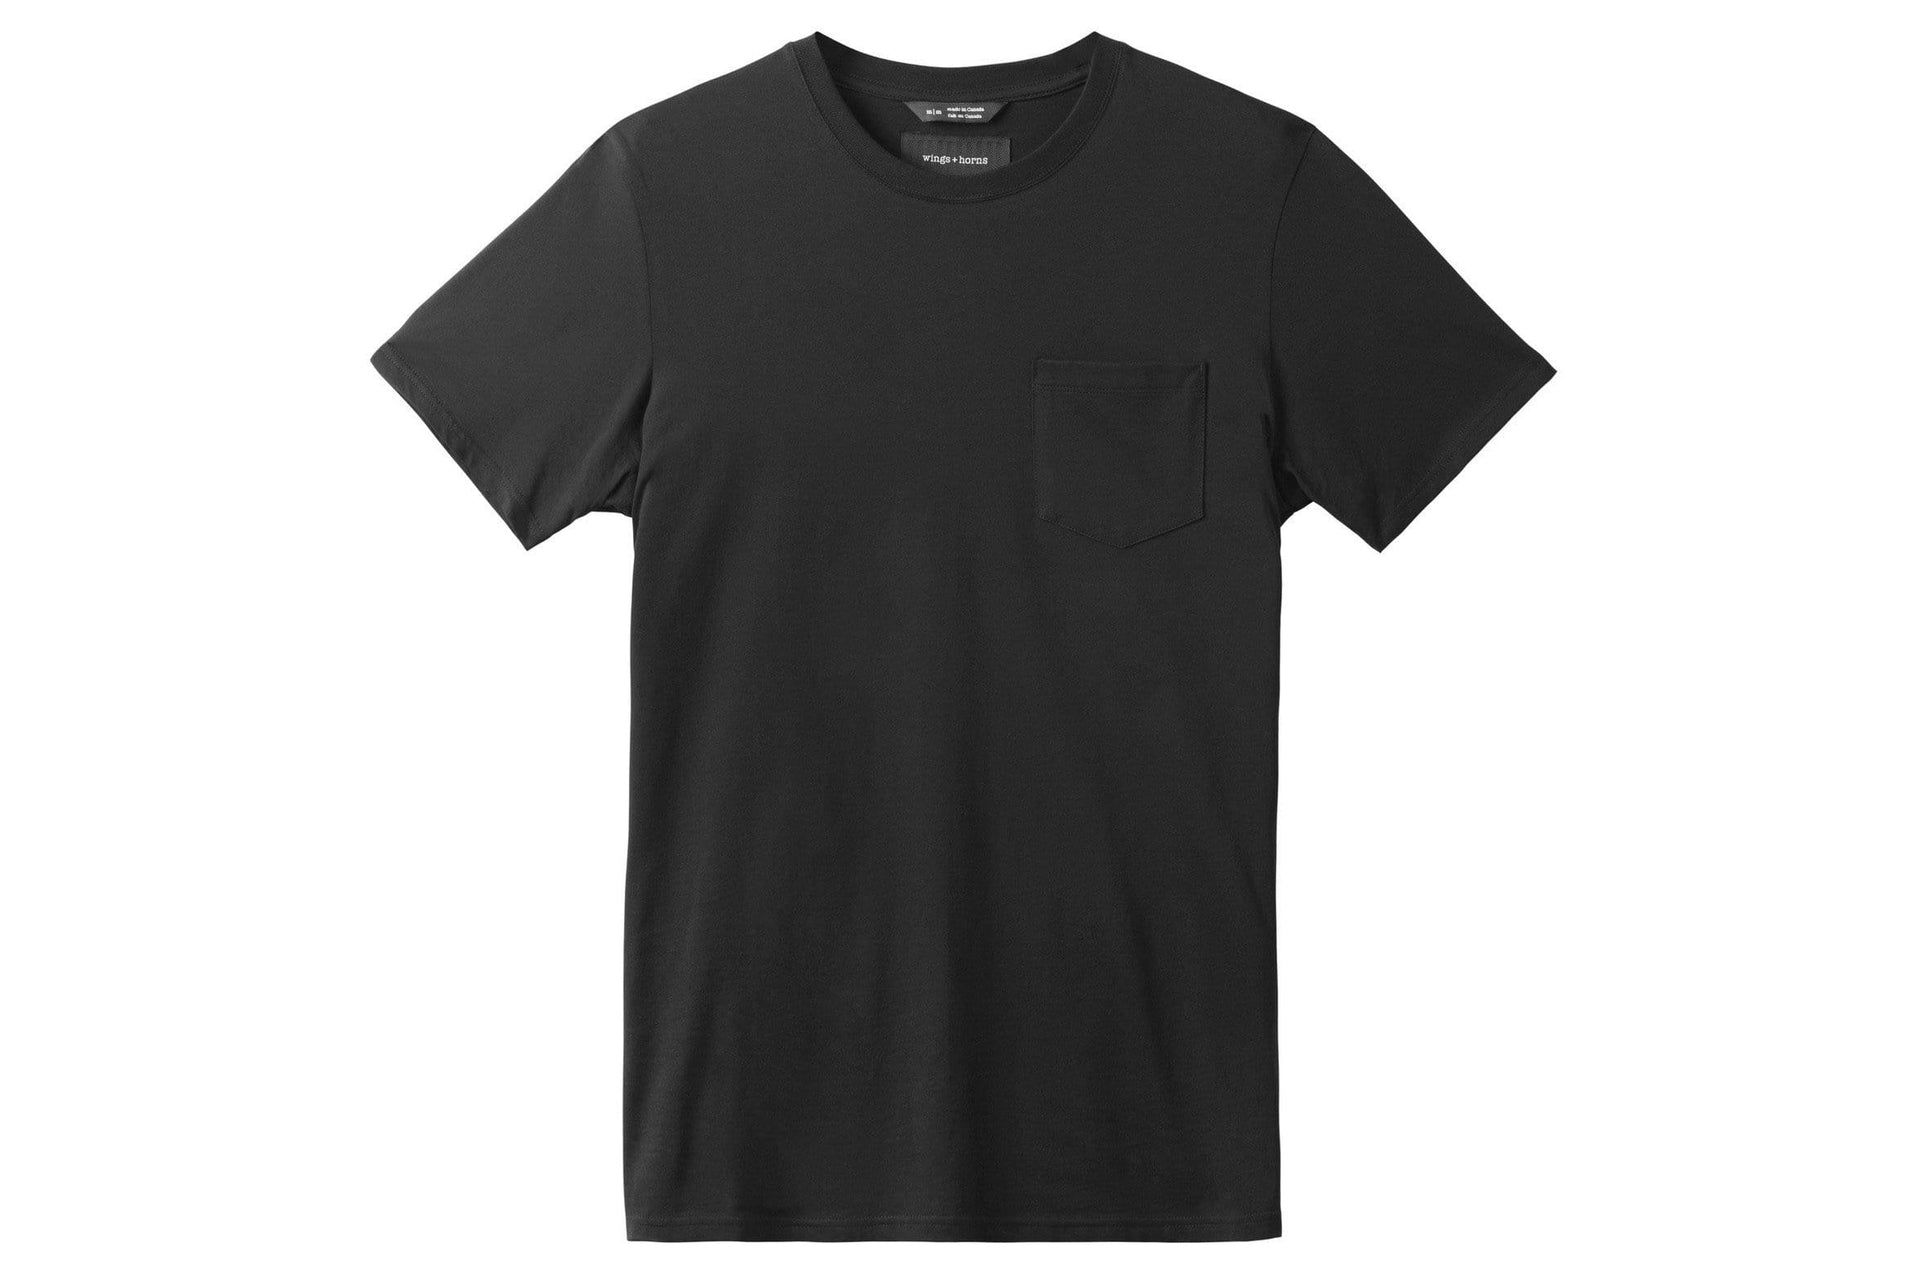 ORIGINAL POCKET T-SHIRT MENS SOFTGOODS WINGS+HORNS BLACK XL WI-1079